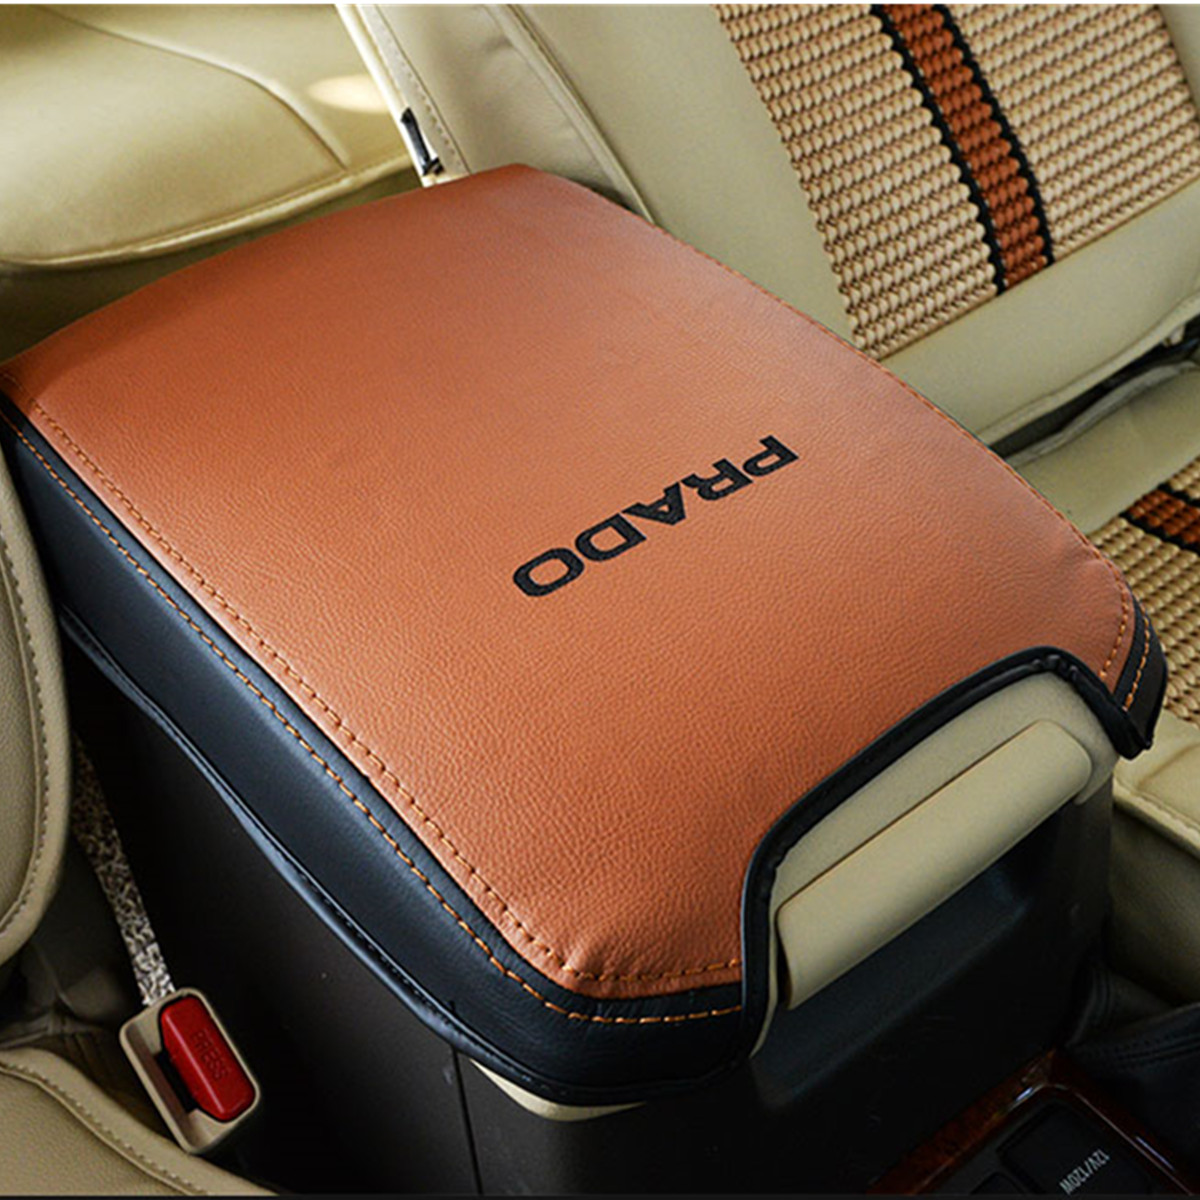 Seat Center Armrest Box Cover for <font><b>Toyota</b></font> <font><b>Land</b></font> <font><b>Cruiser</b></font> <font><b>Prado</b></font> <font><b>120</b></font> <font><b>2003</b></font> 2004 2005 2006 2007 2008 <font><b>2009</b></font> Accessories image